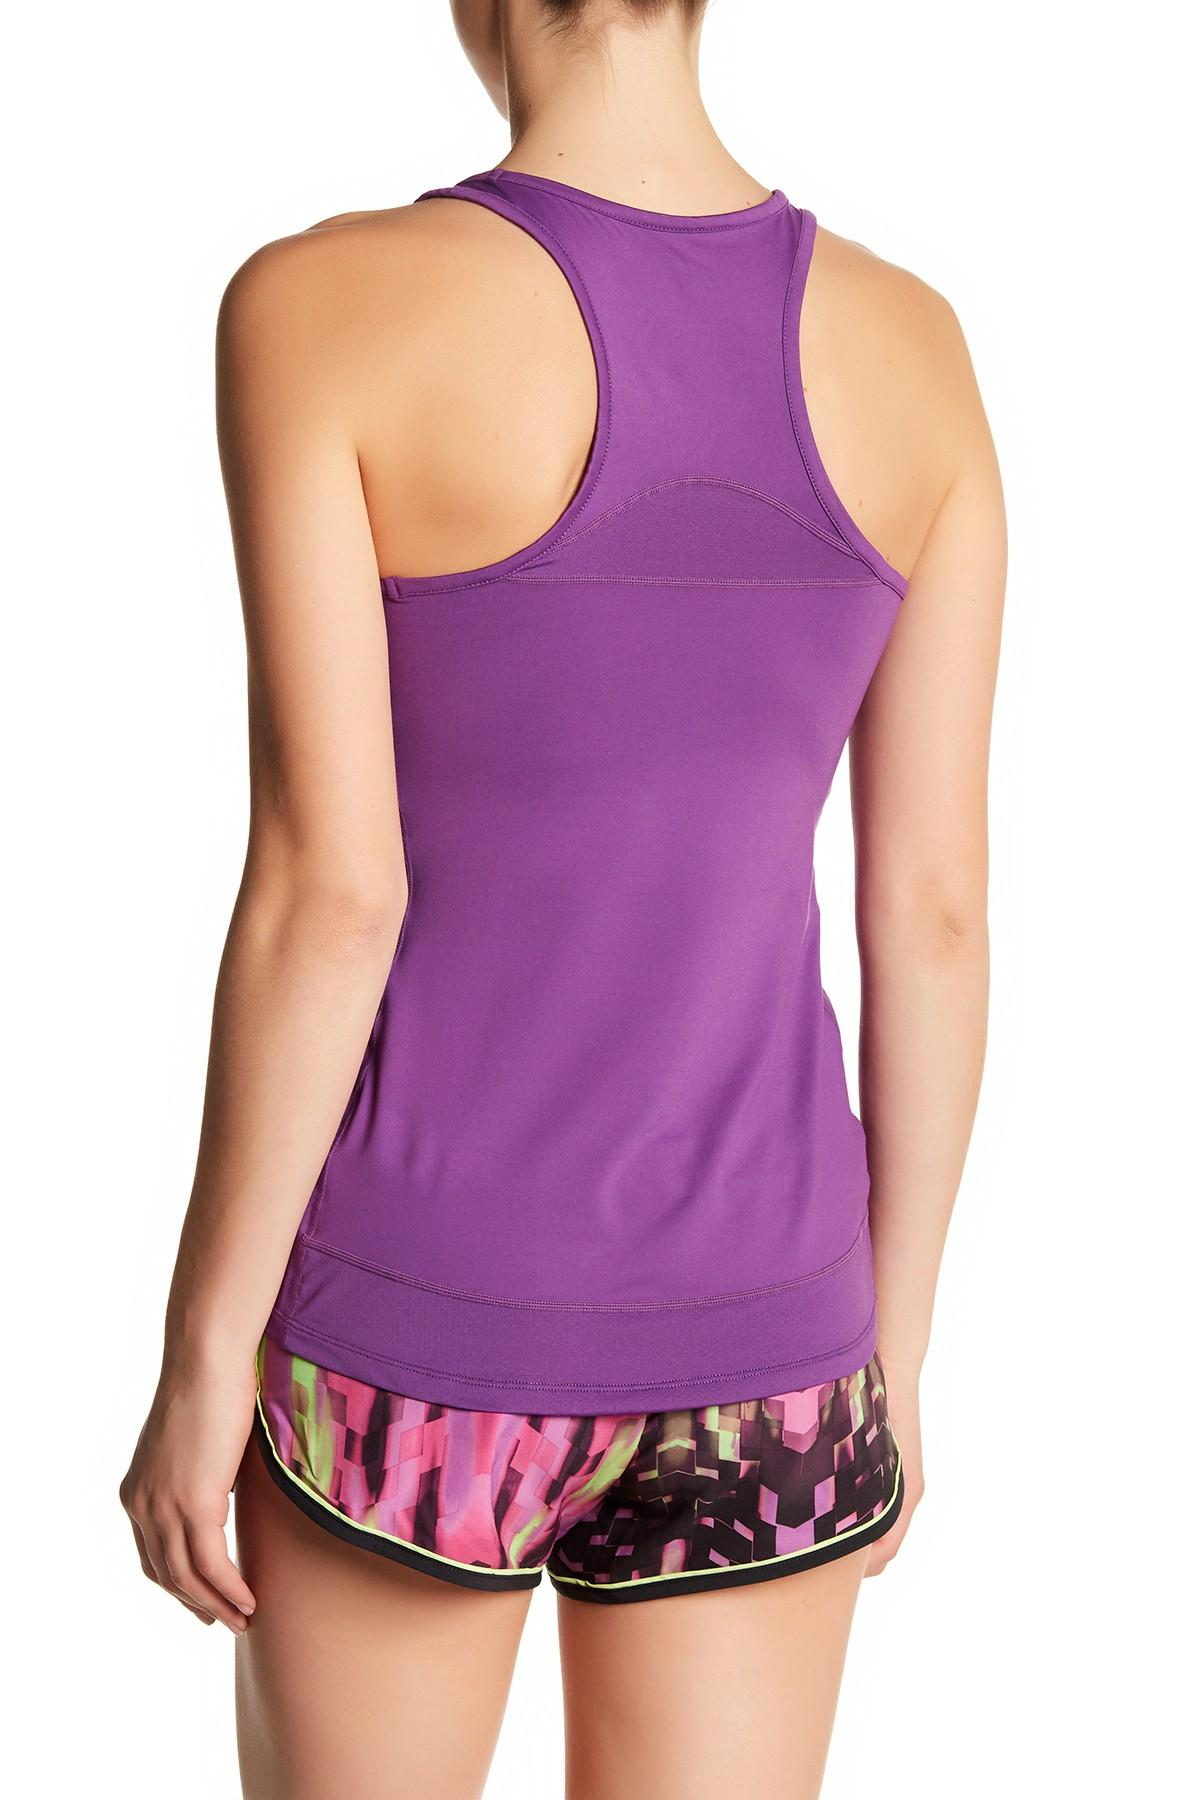 Asics-NEW-Solid-Tone-Women-039-s-Performance-Racerback-ASX-Dry-Tank-Top thumbnail 7